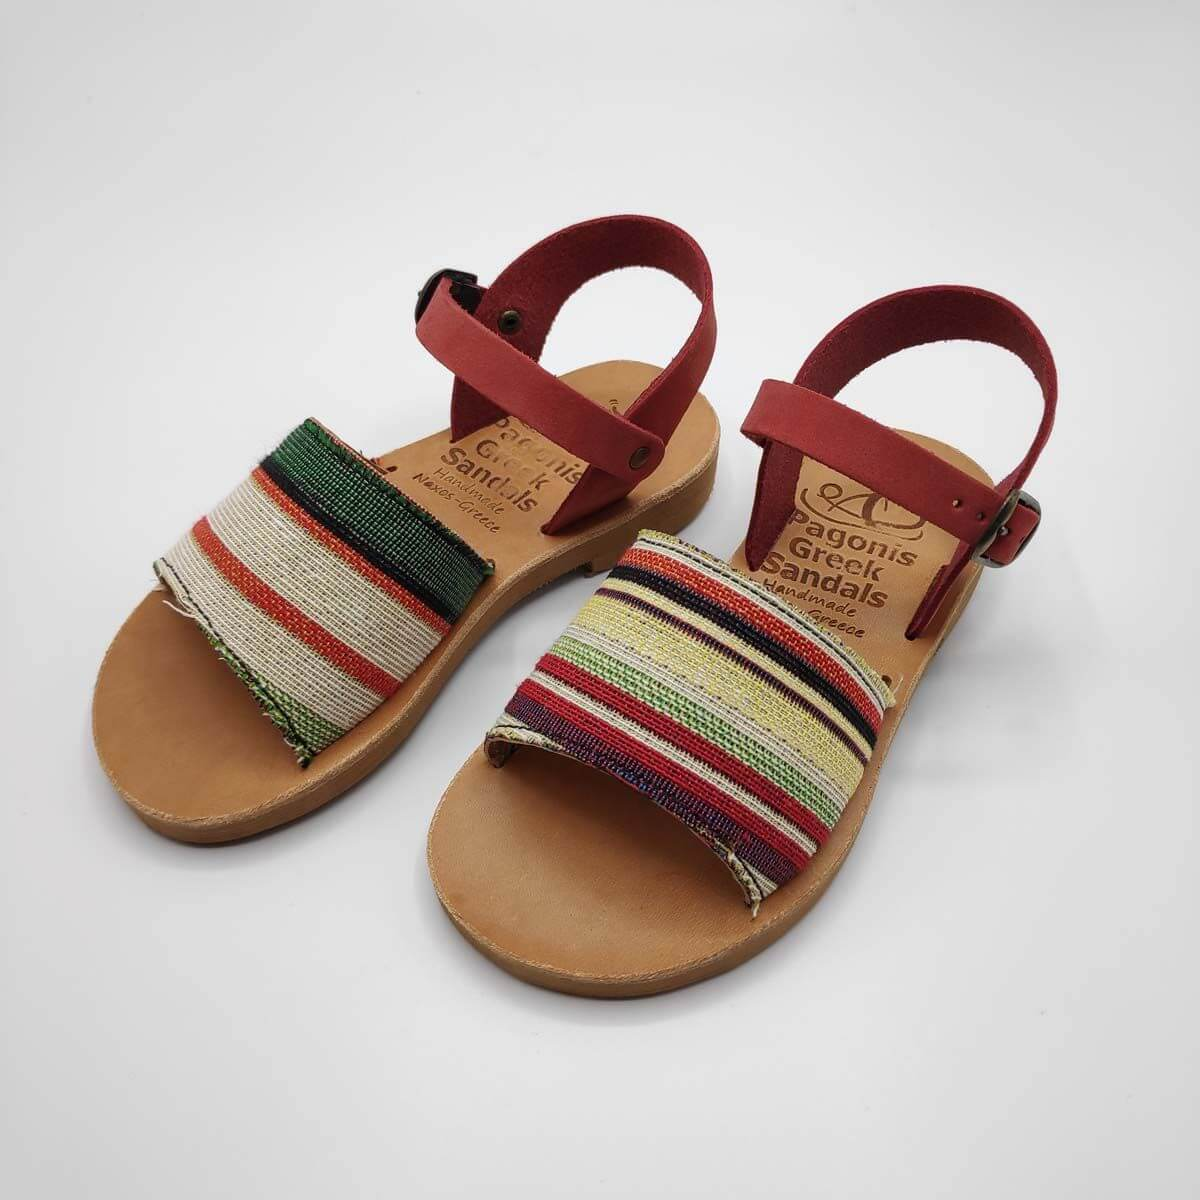 Leather Toddler Sandals For Girls | Pink and stripes fabric